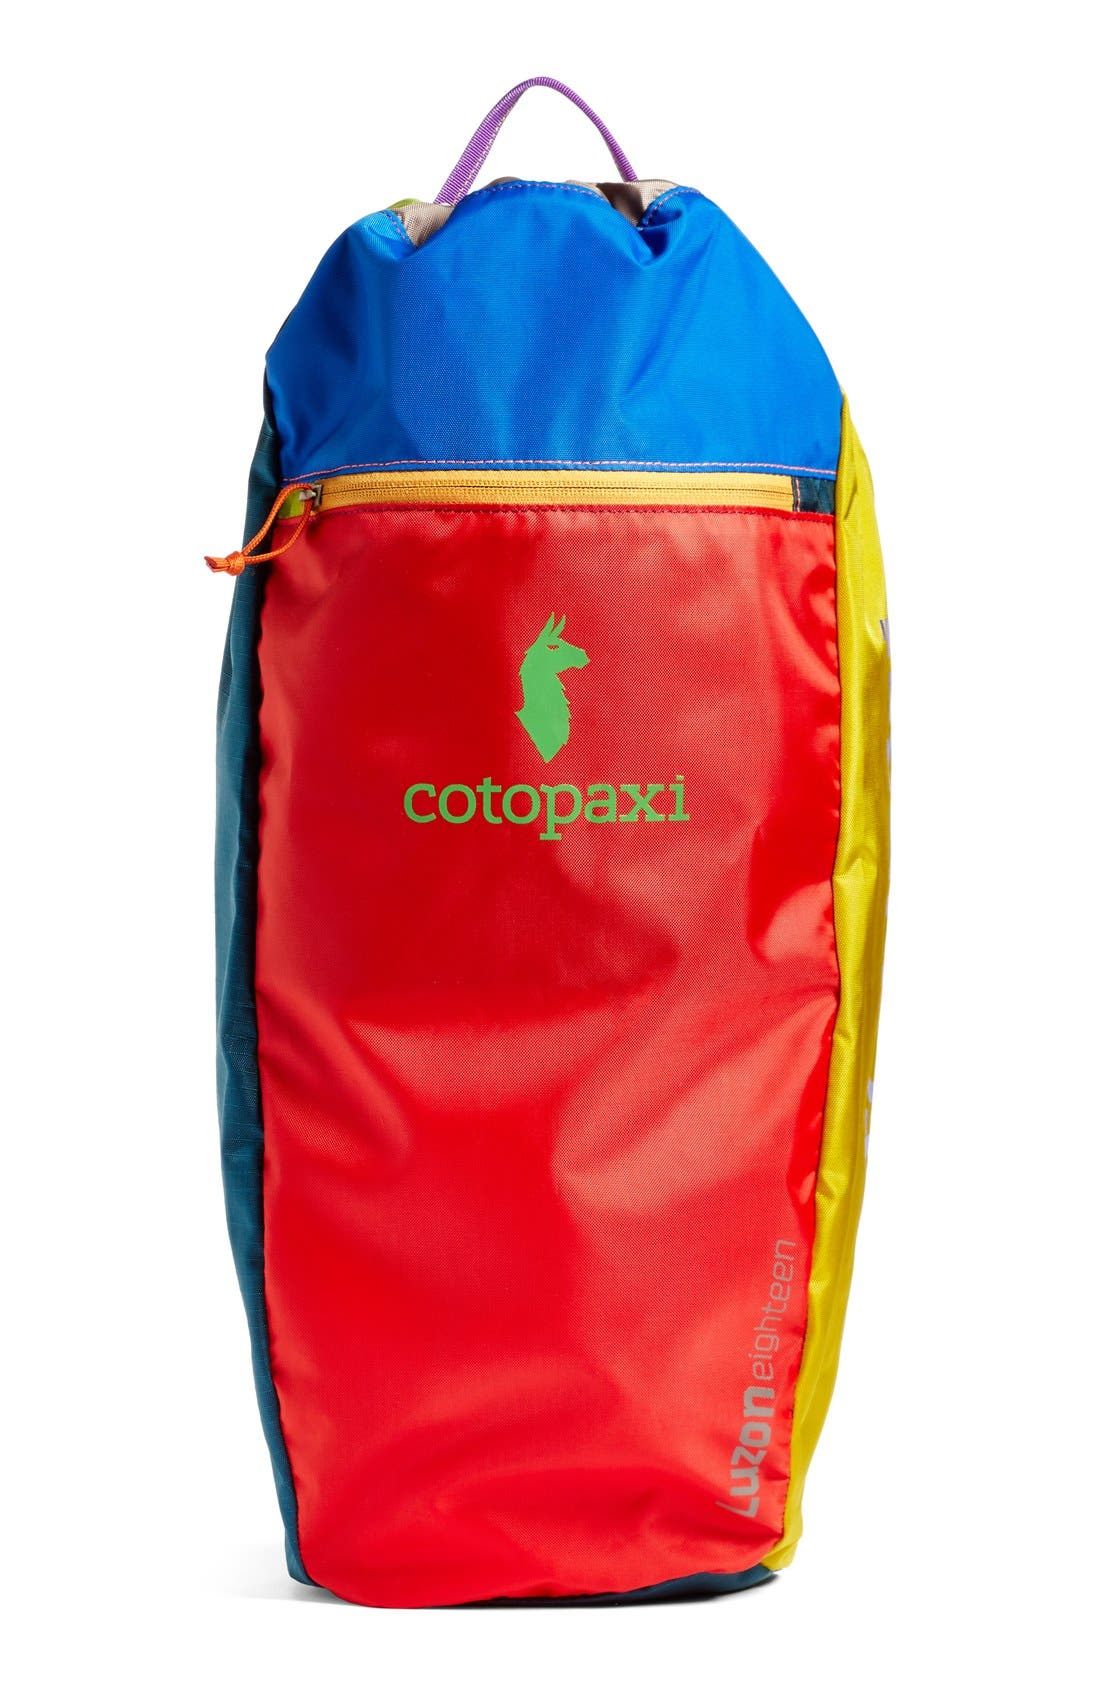 Main Image - Cotopaxi Luzon Del Dia One of a Kind Ripstop Nylon Daypack